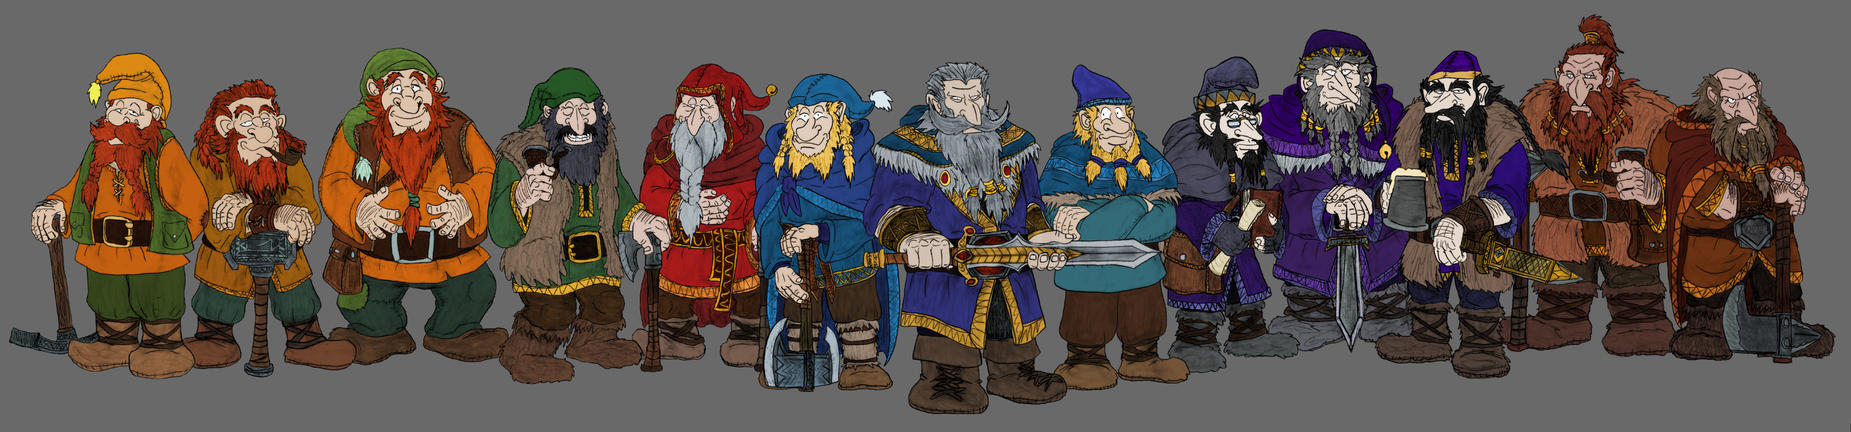 Thorin and Company by Mara999